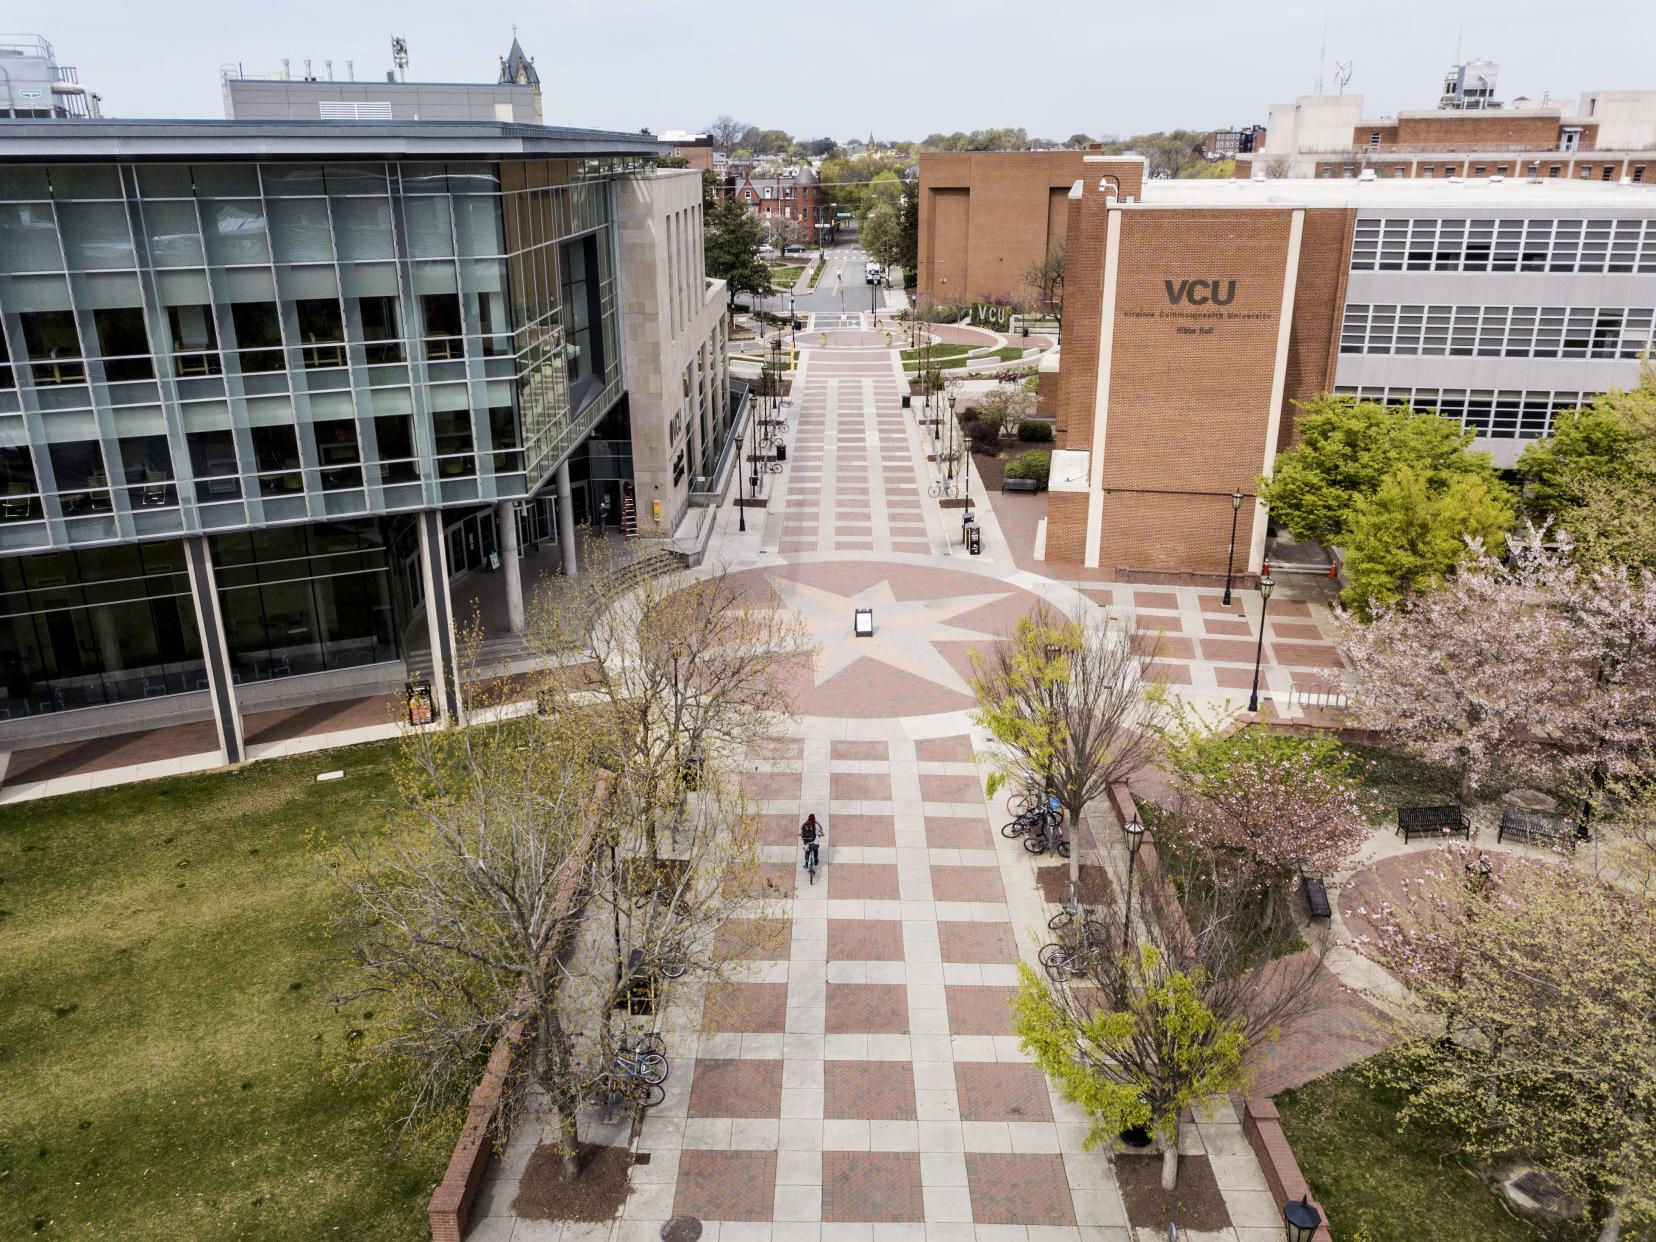 Vcu Calendar Spring 2021 VCU will continue with online classes, distancing in spring 2021